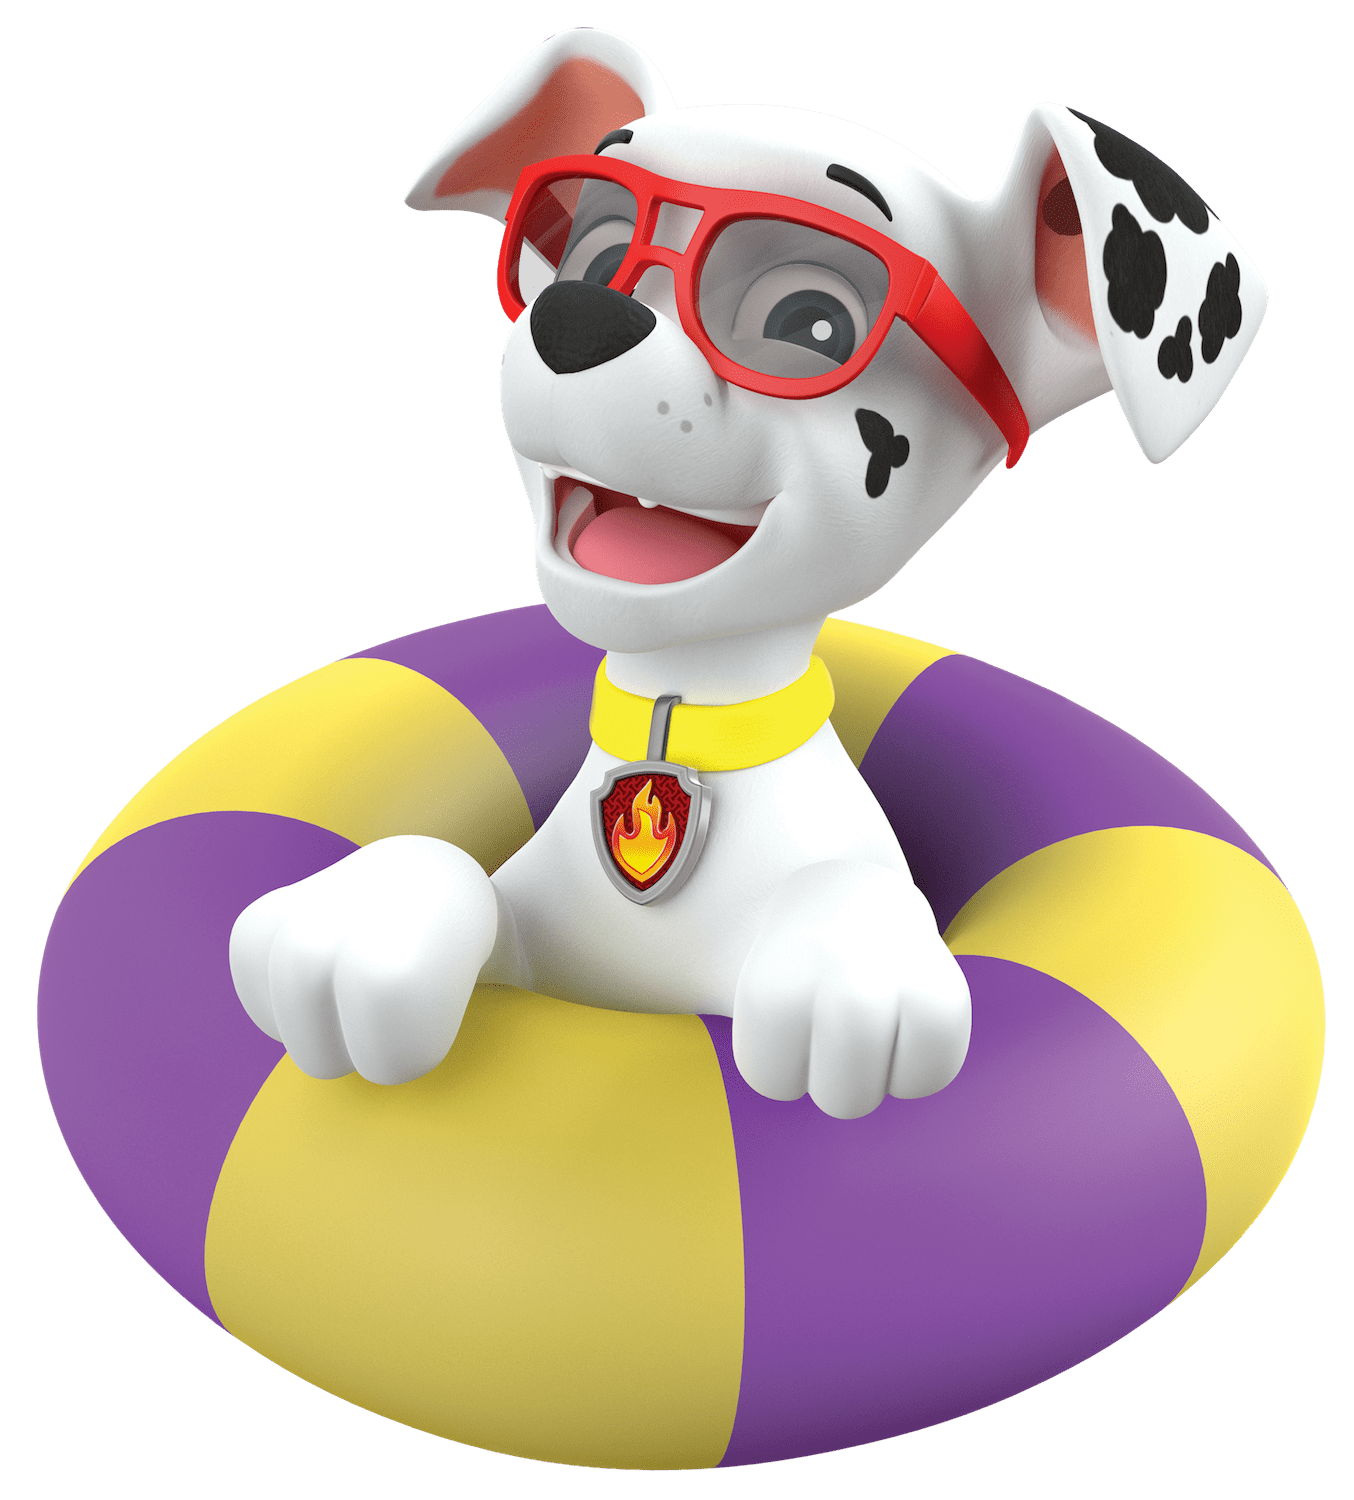 Toy clipart pool toy. Marshall in a paw